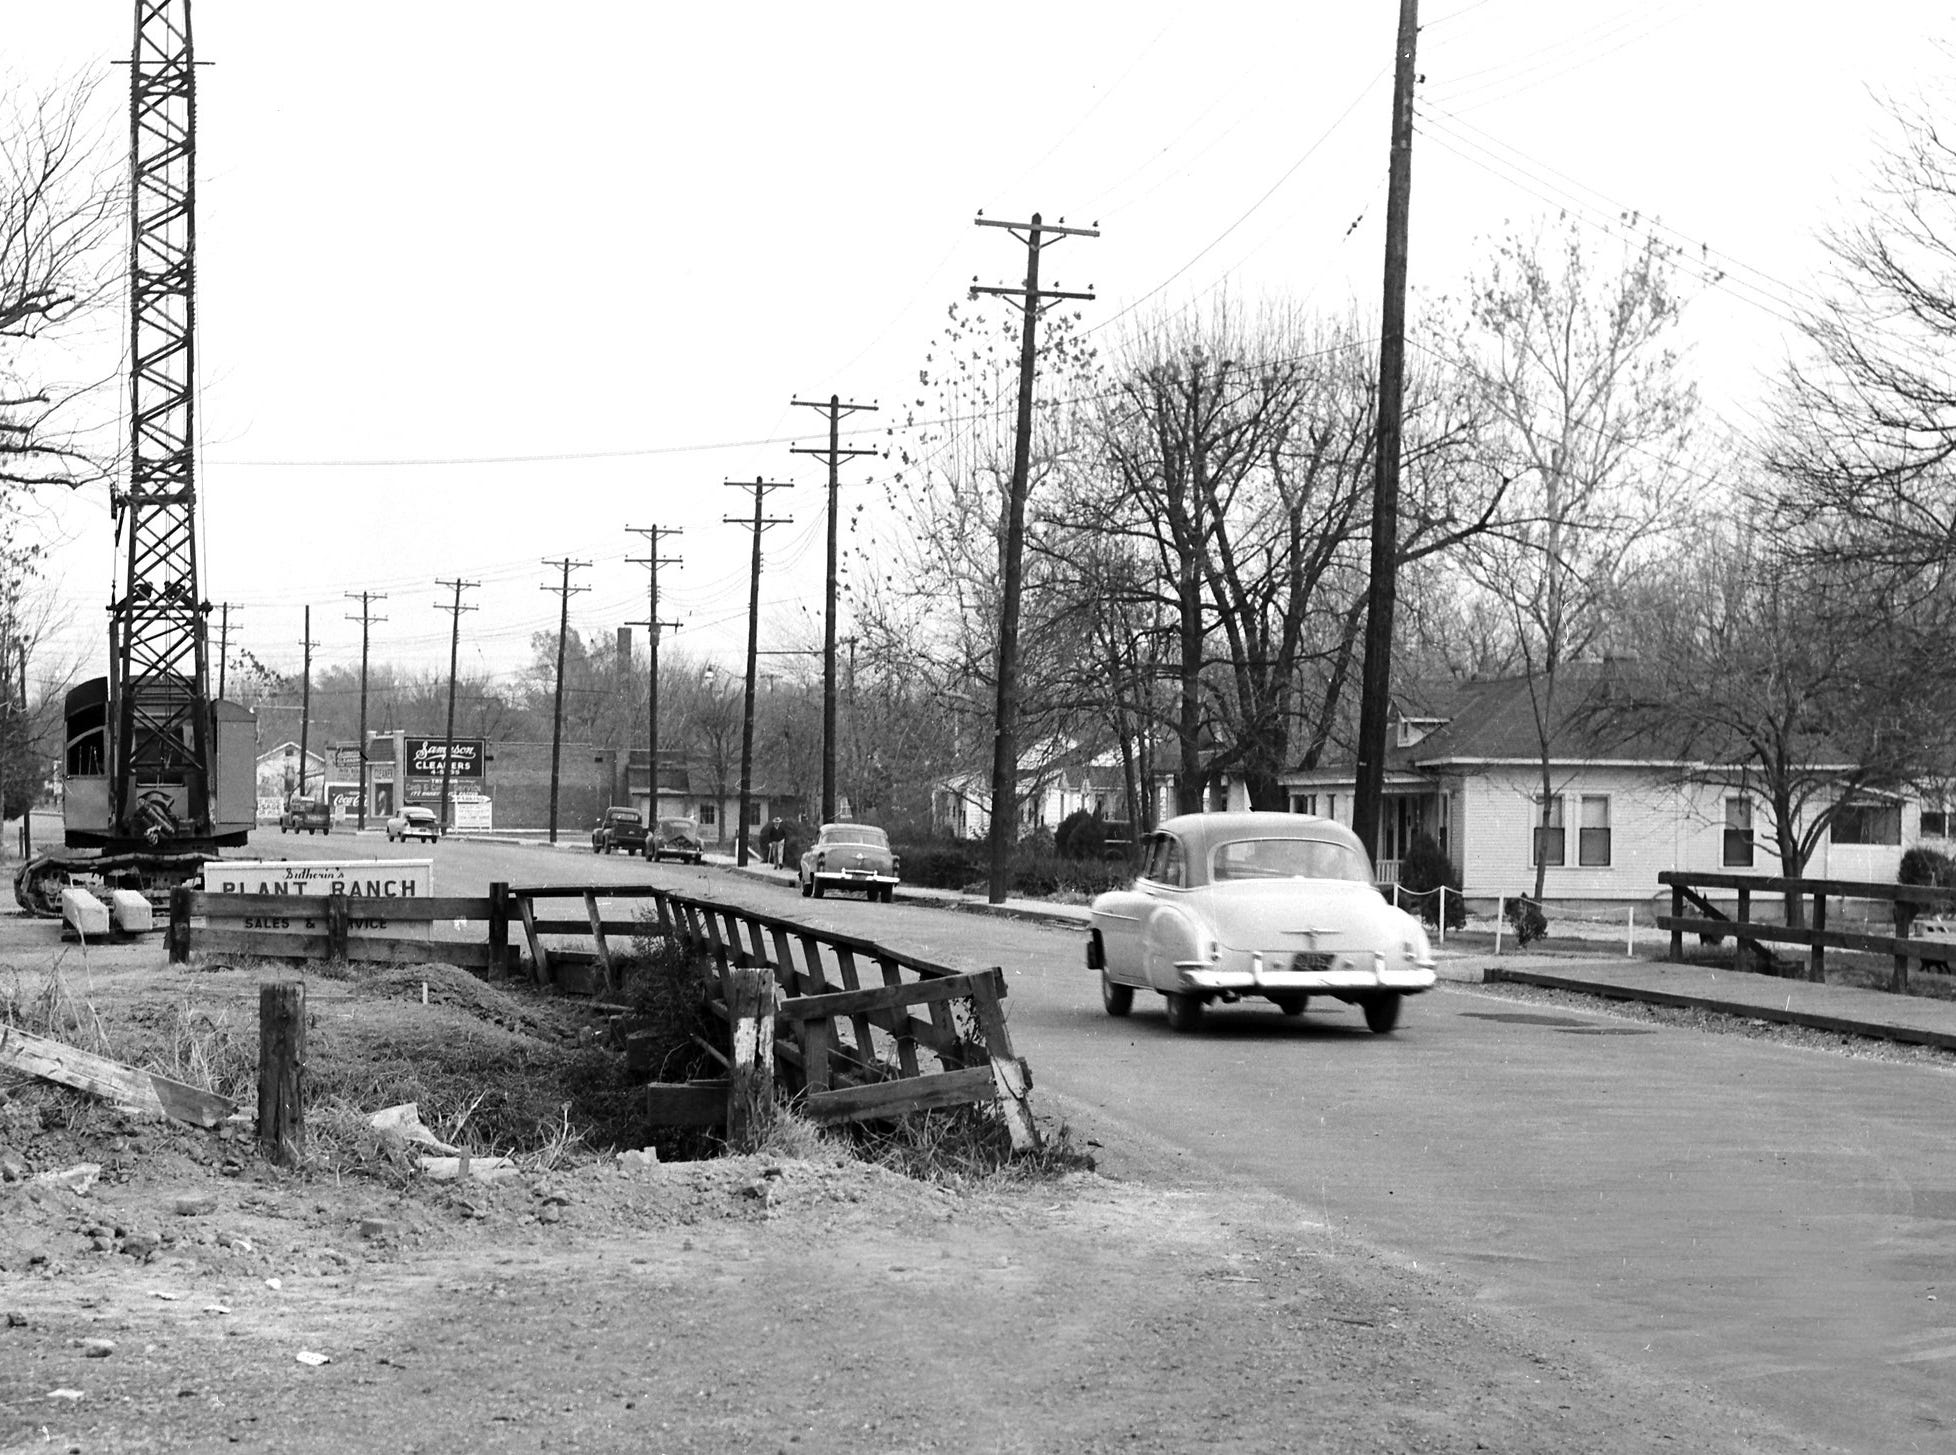 City Engineering Department crews conduct pile boring tests on 8 Dec 1954, preliminary to widening a bridge in the 3300 block of Broad in order to convert the street into a through street from East Parkway to Summer at National.  Improvement is expected to divert a large volume of traffic from Summer west of National.  The expanded part of the bridge will be of steel and concrete construction.